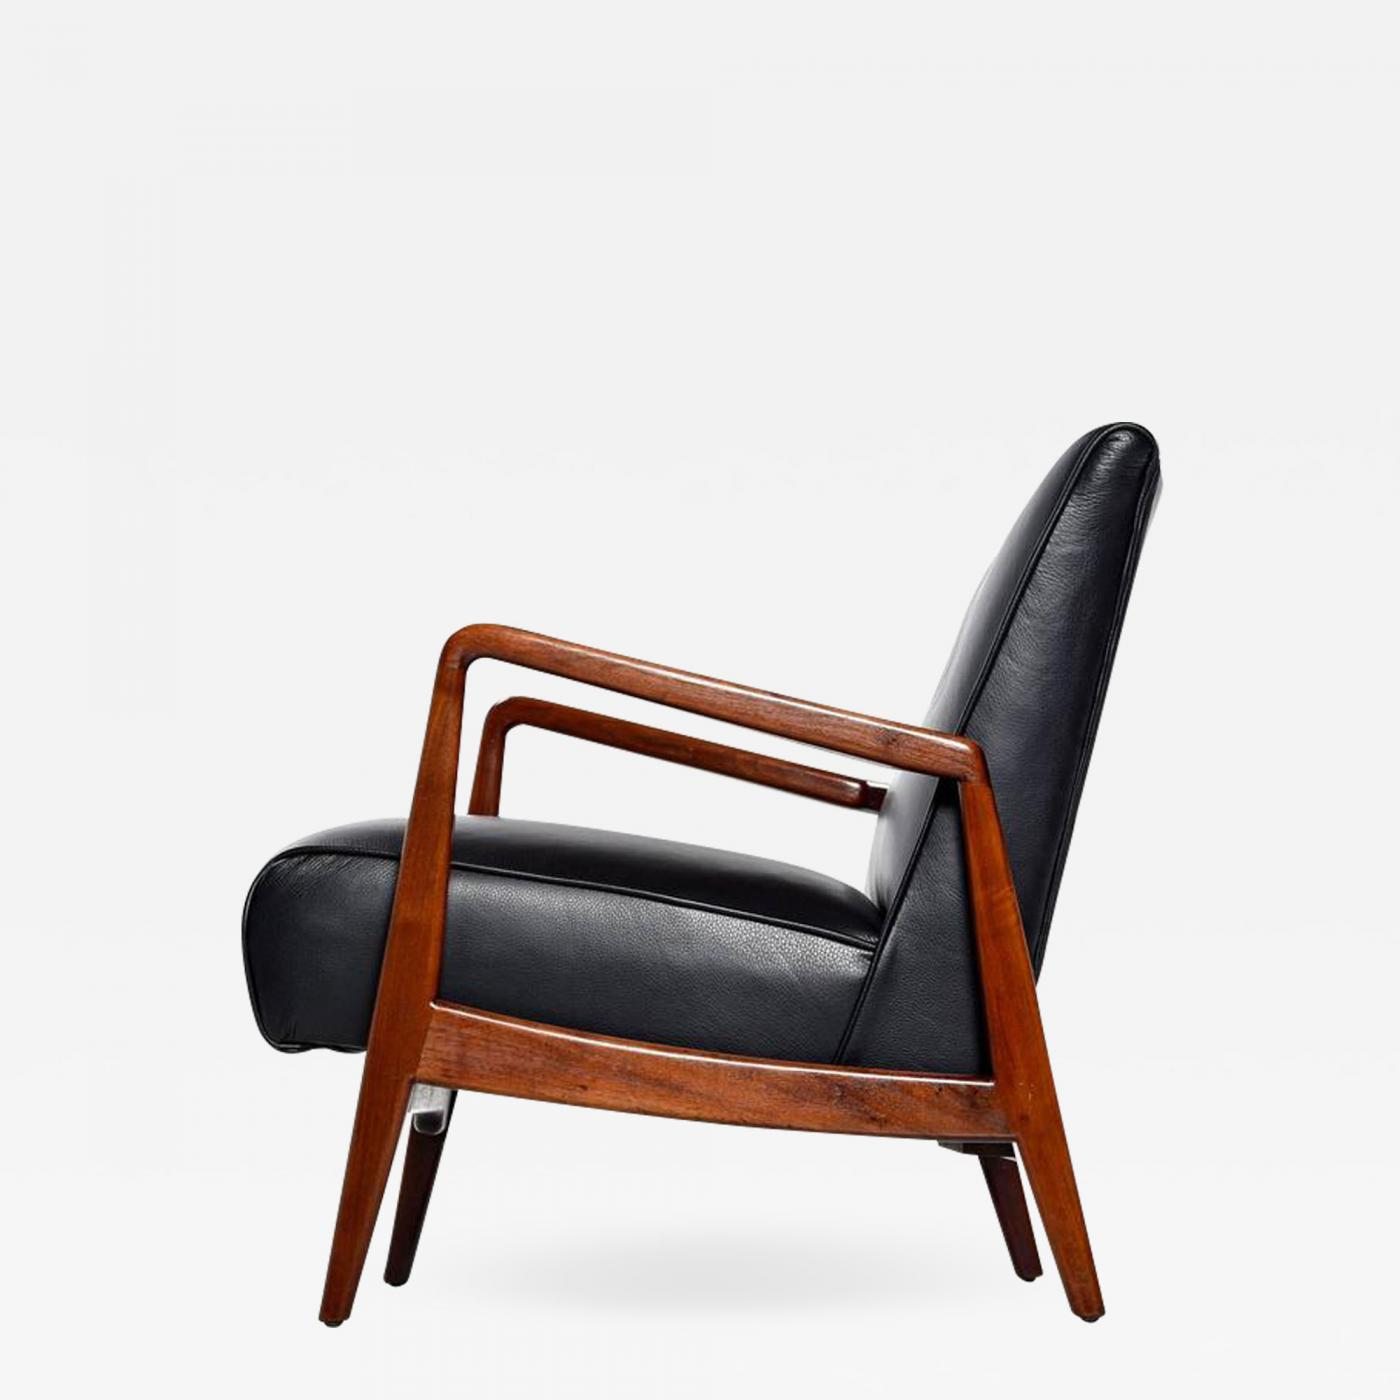 Black Leather Lounge Chair Jens Risom Jens Risom Danish Walnut Tufted Black Leather Lounge Chair 1950s